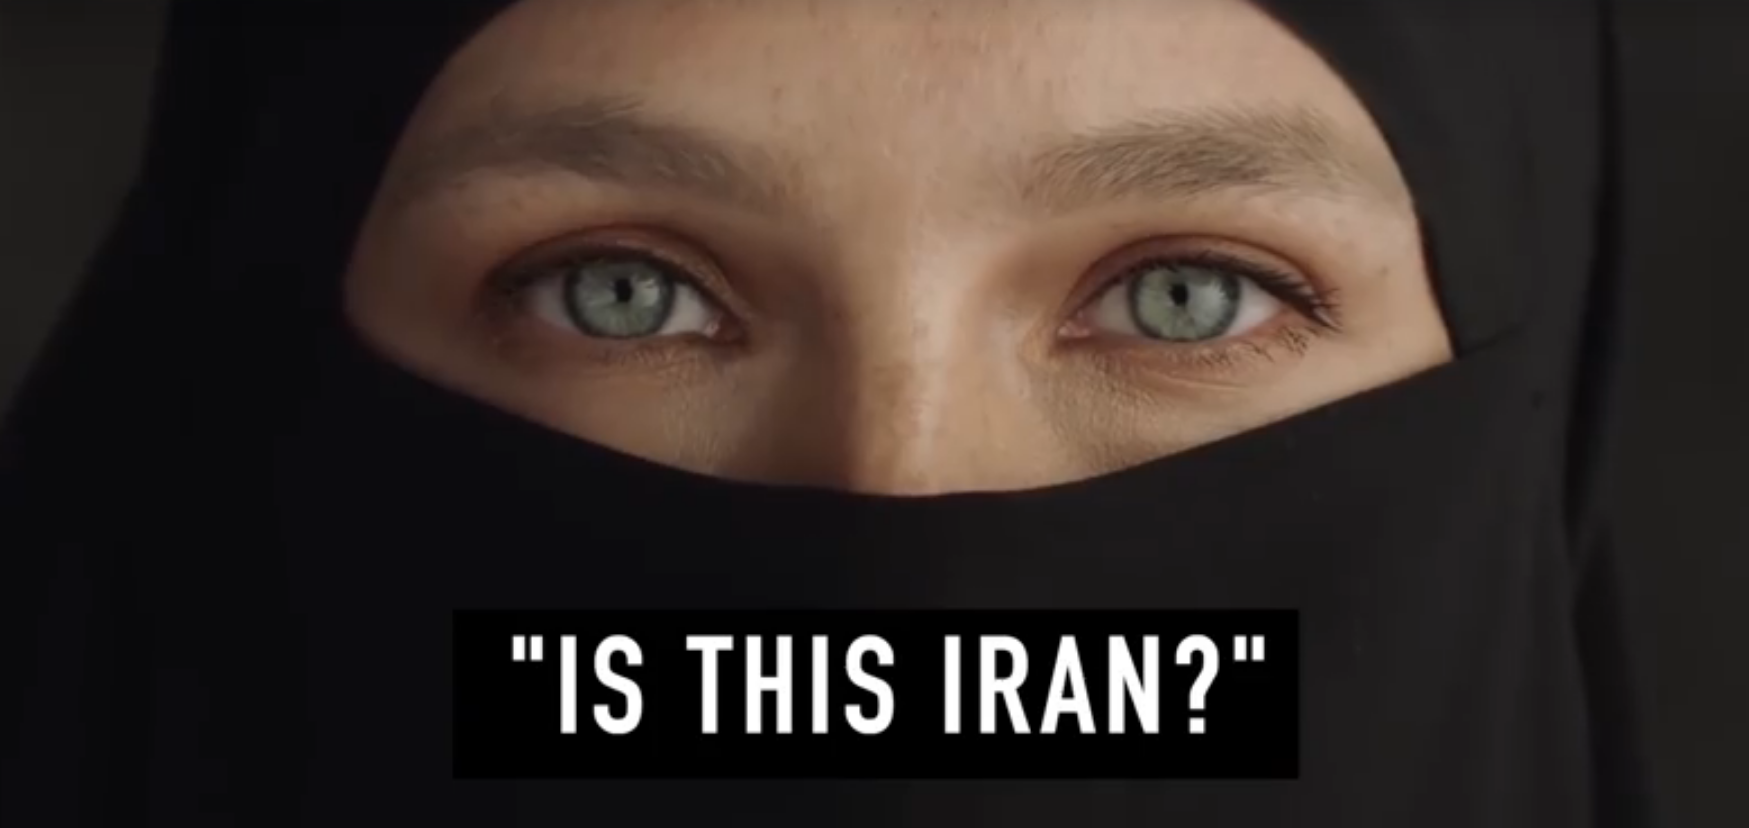 An Israeli advert for a clothes brand shows a woman taking off her niqab to promote freedom, sparks controversy.